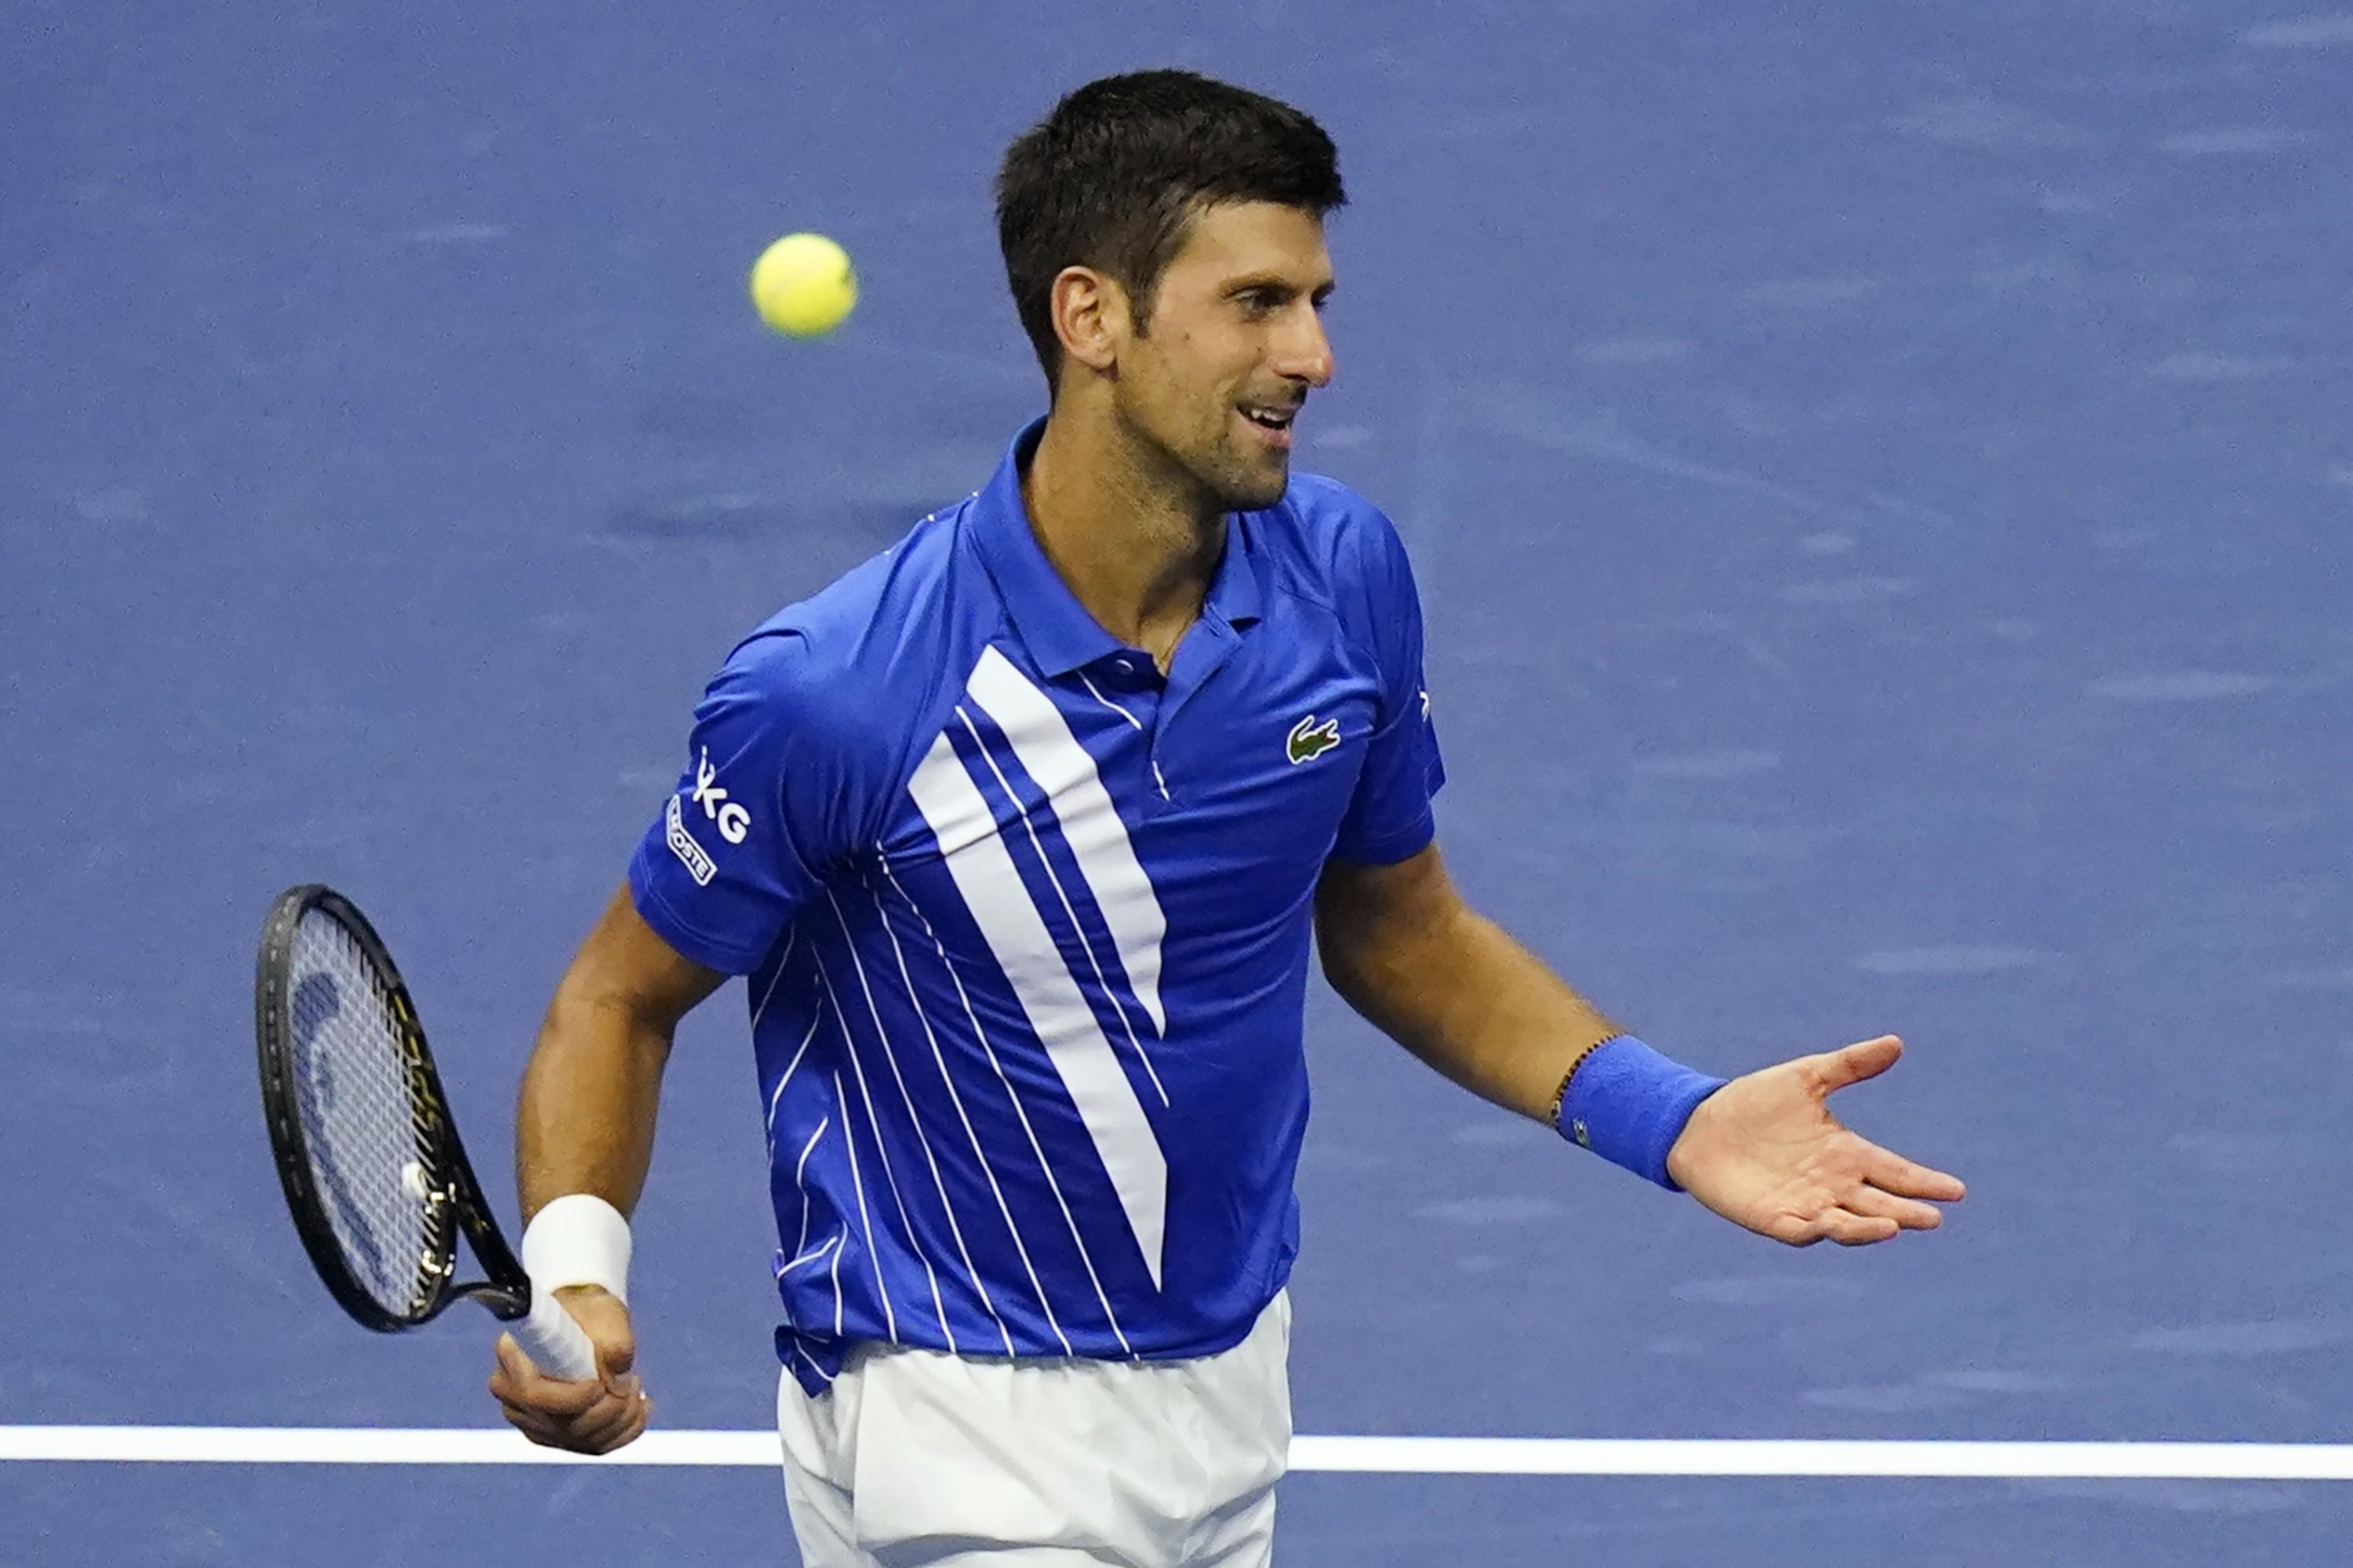 Not The Last Racket I Ll Break Djokovic Advances Into Italian Open Semi Finals Daily Sabah